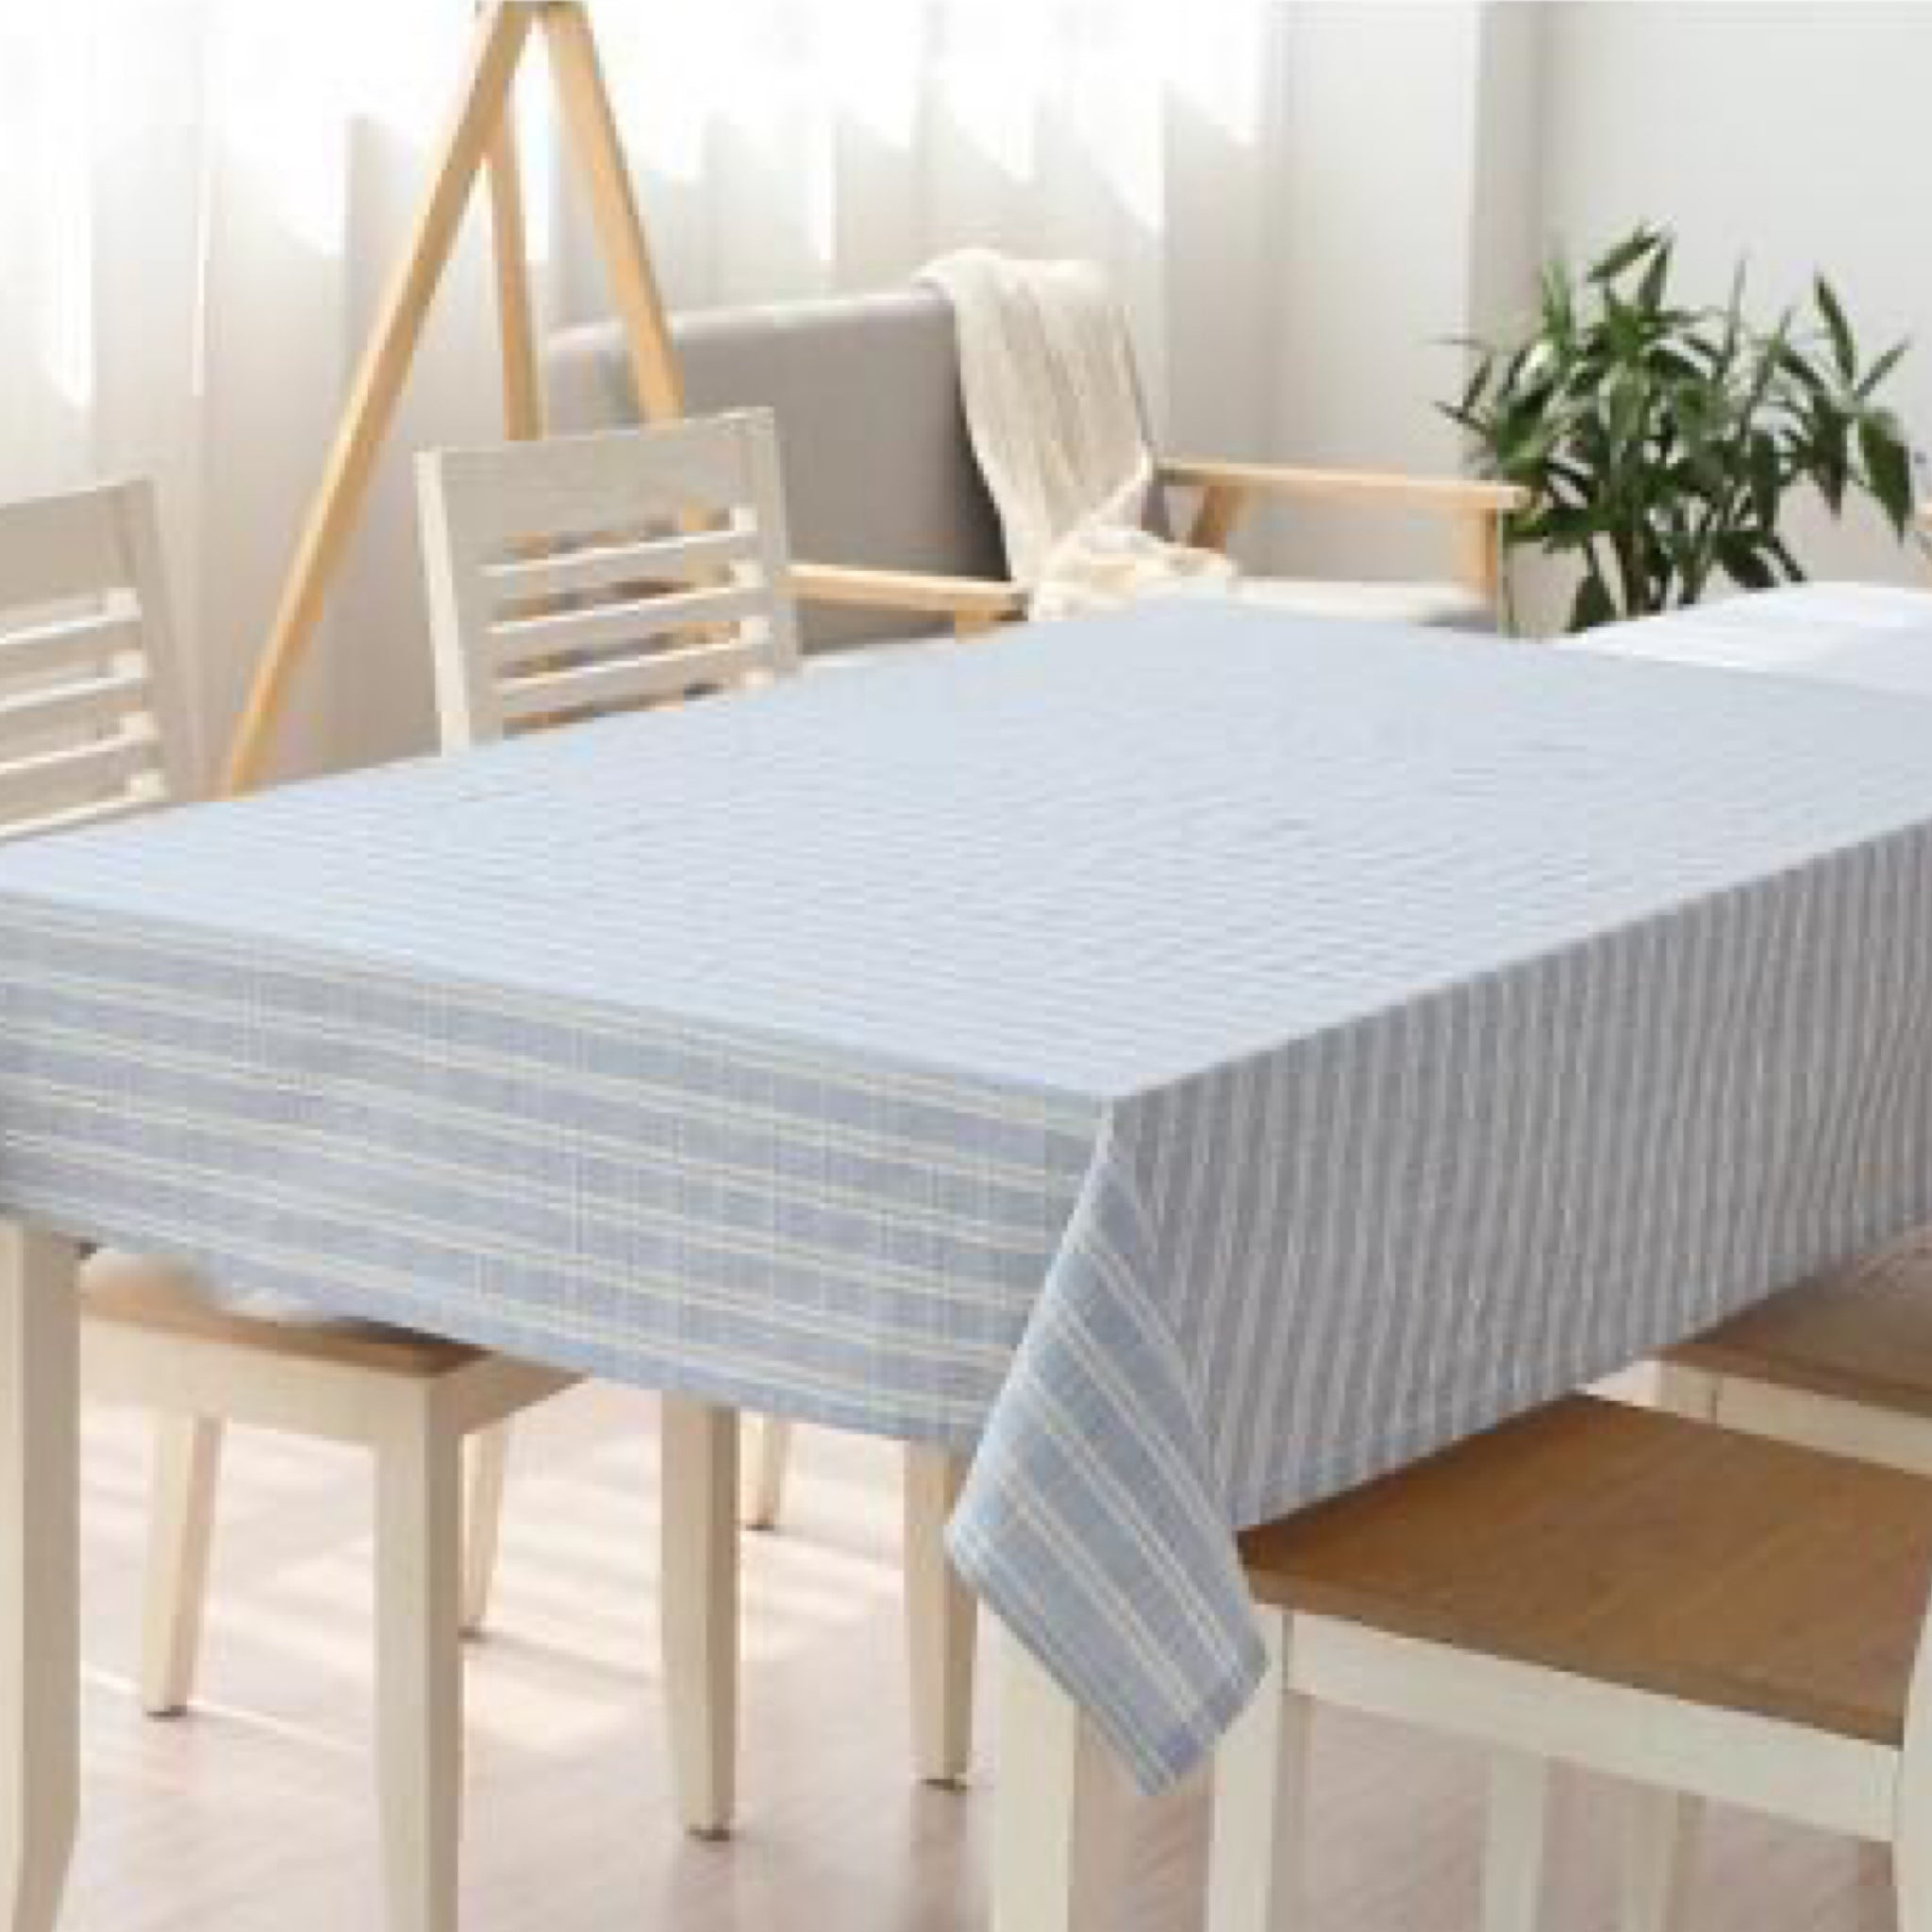 Japanese Blue Plaid Cotton Linen Tablecloth Trend